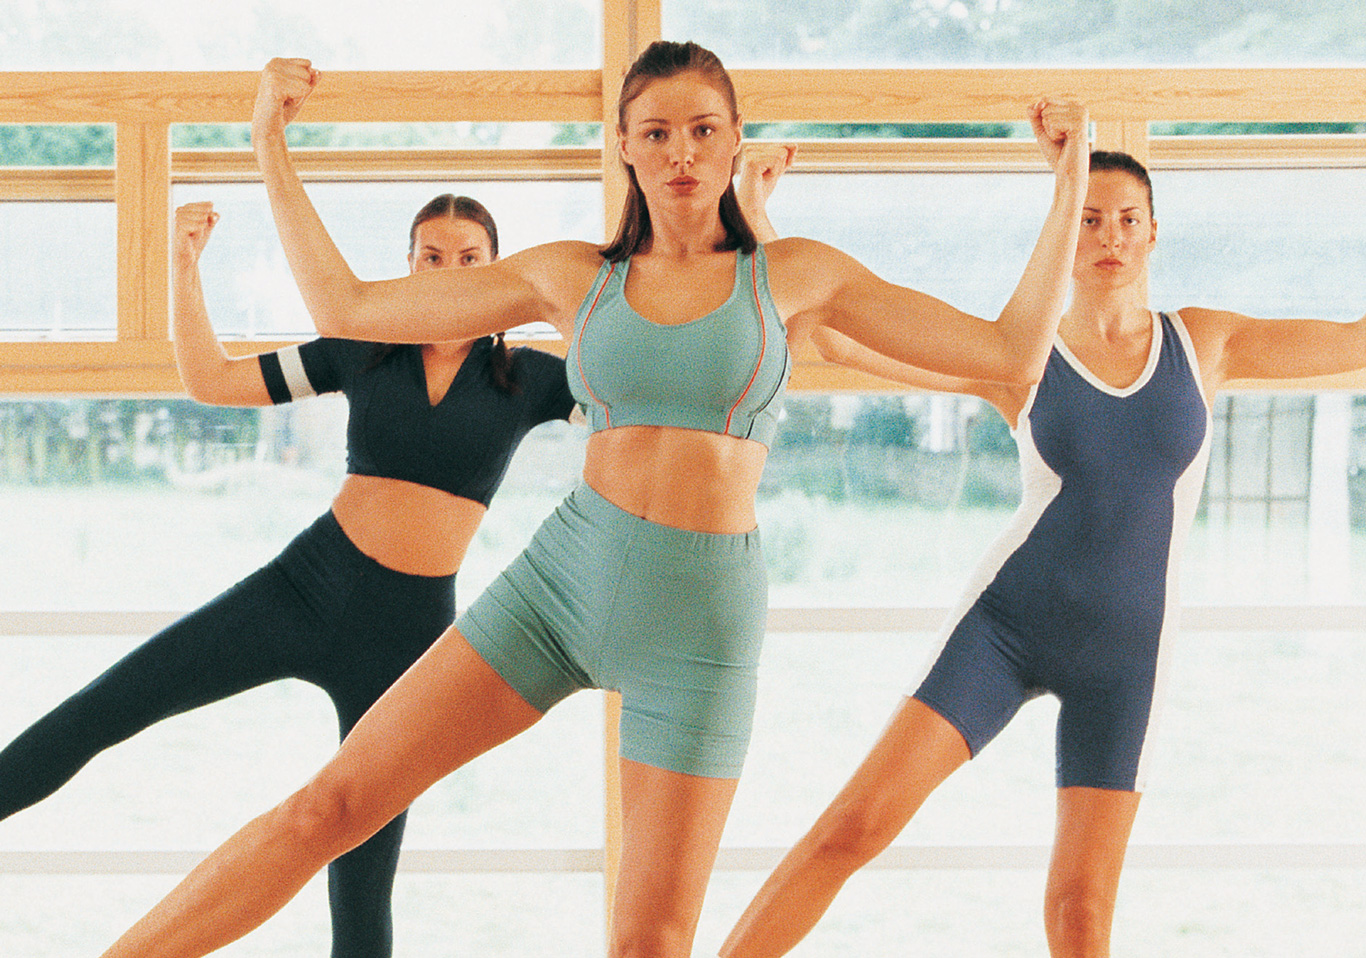 3 woman in an exercise class